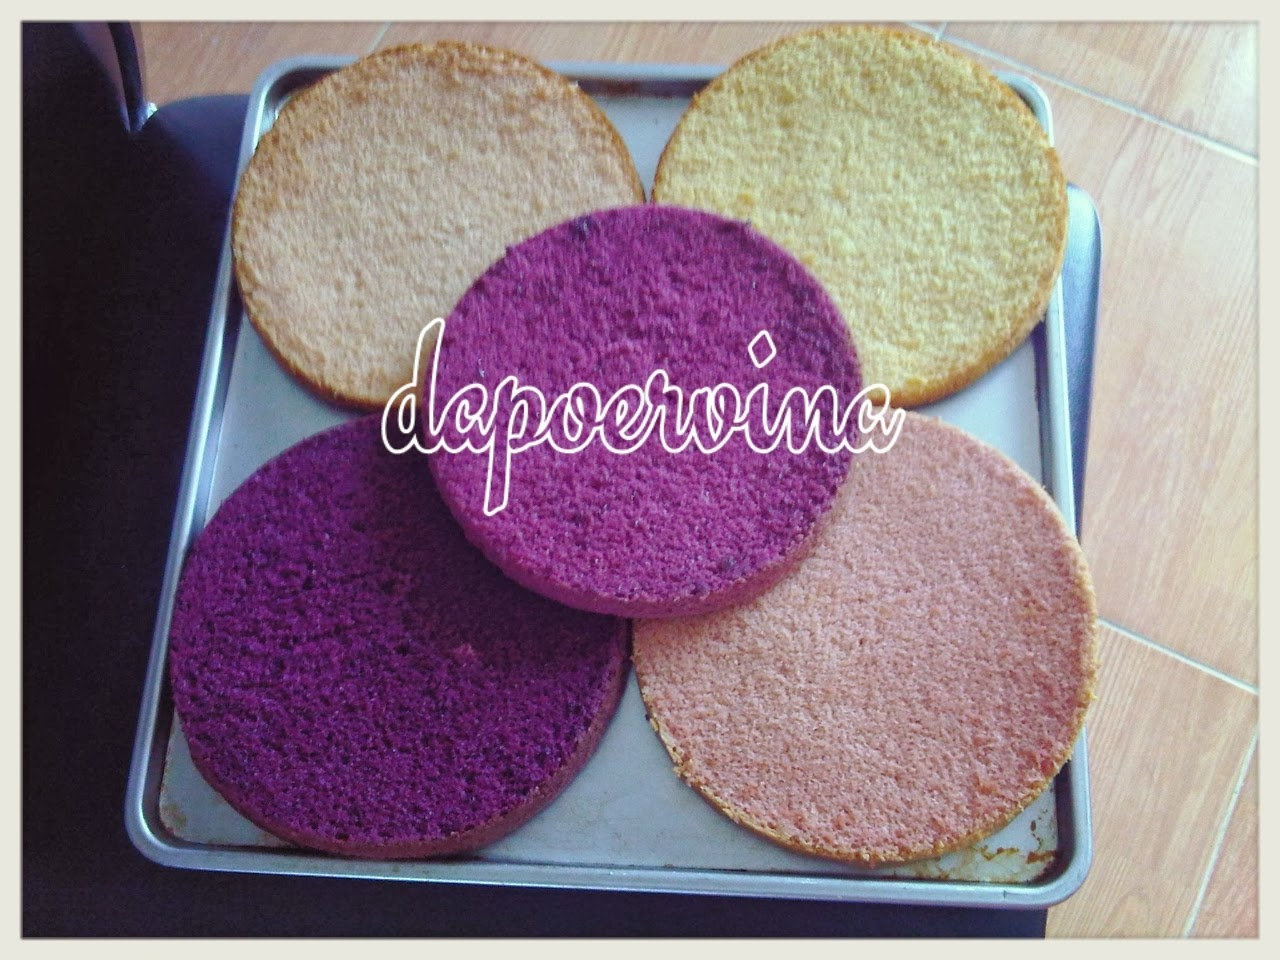 Resep Ombre Cake Ncc